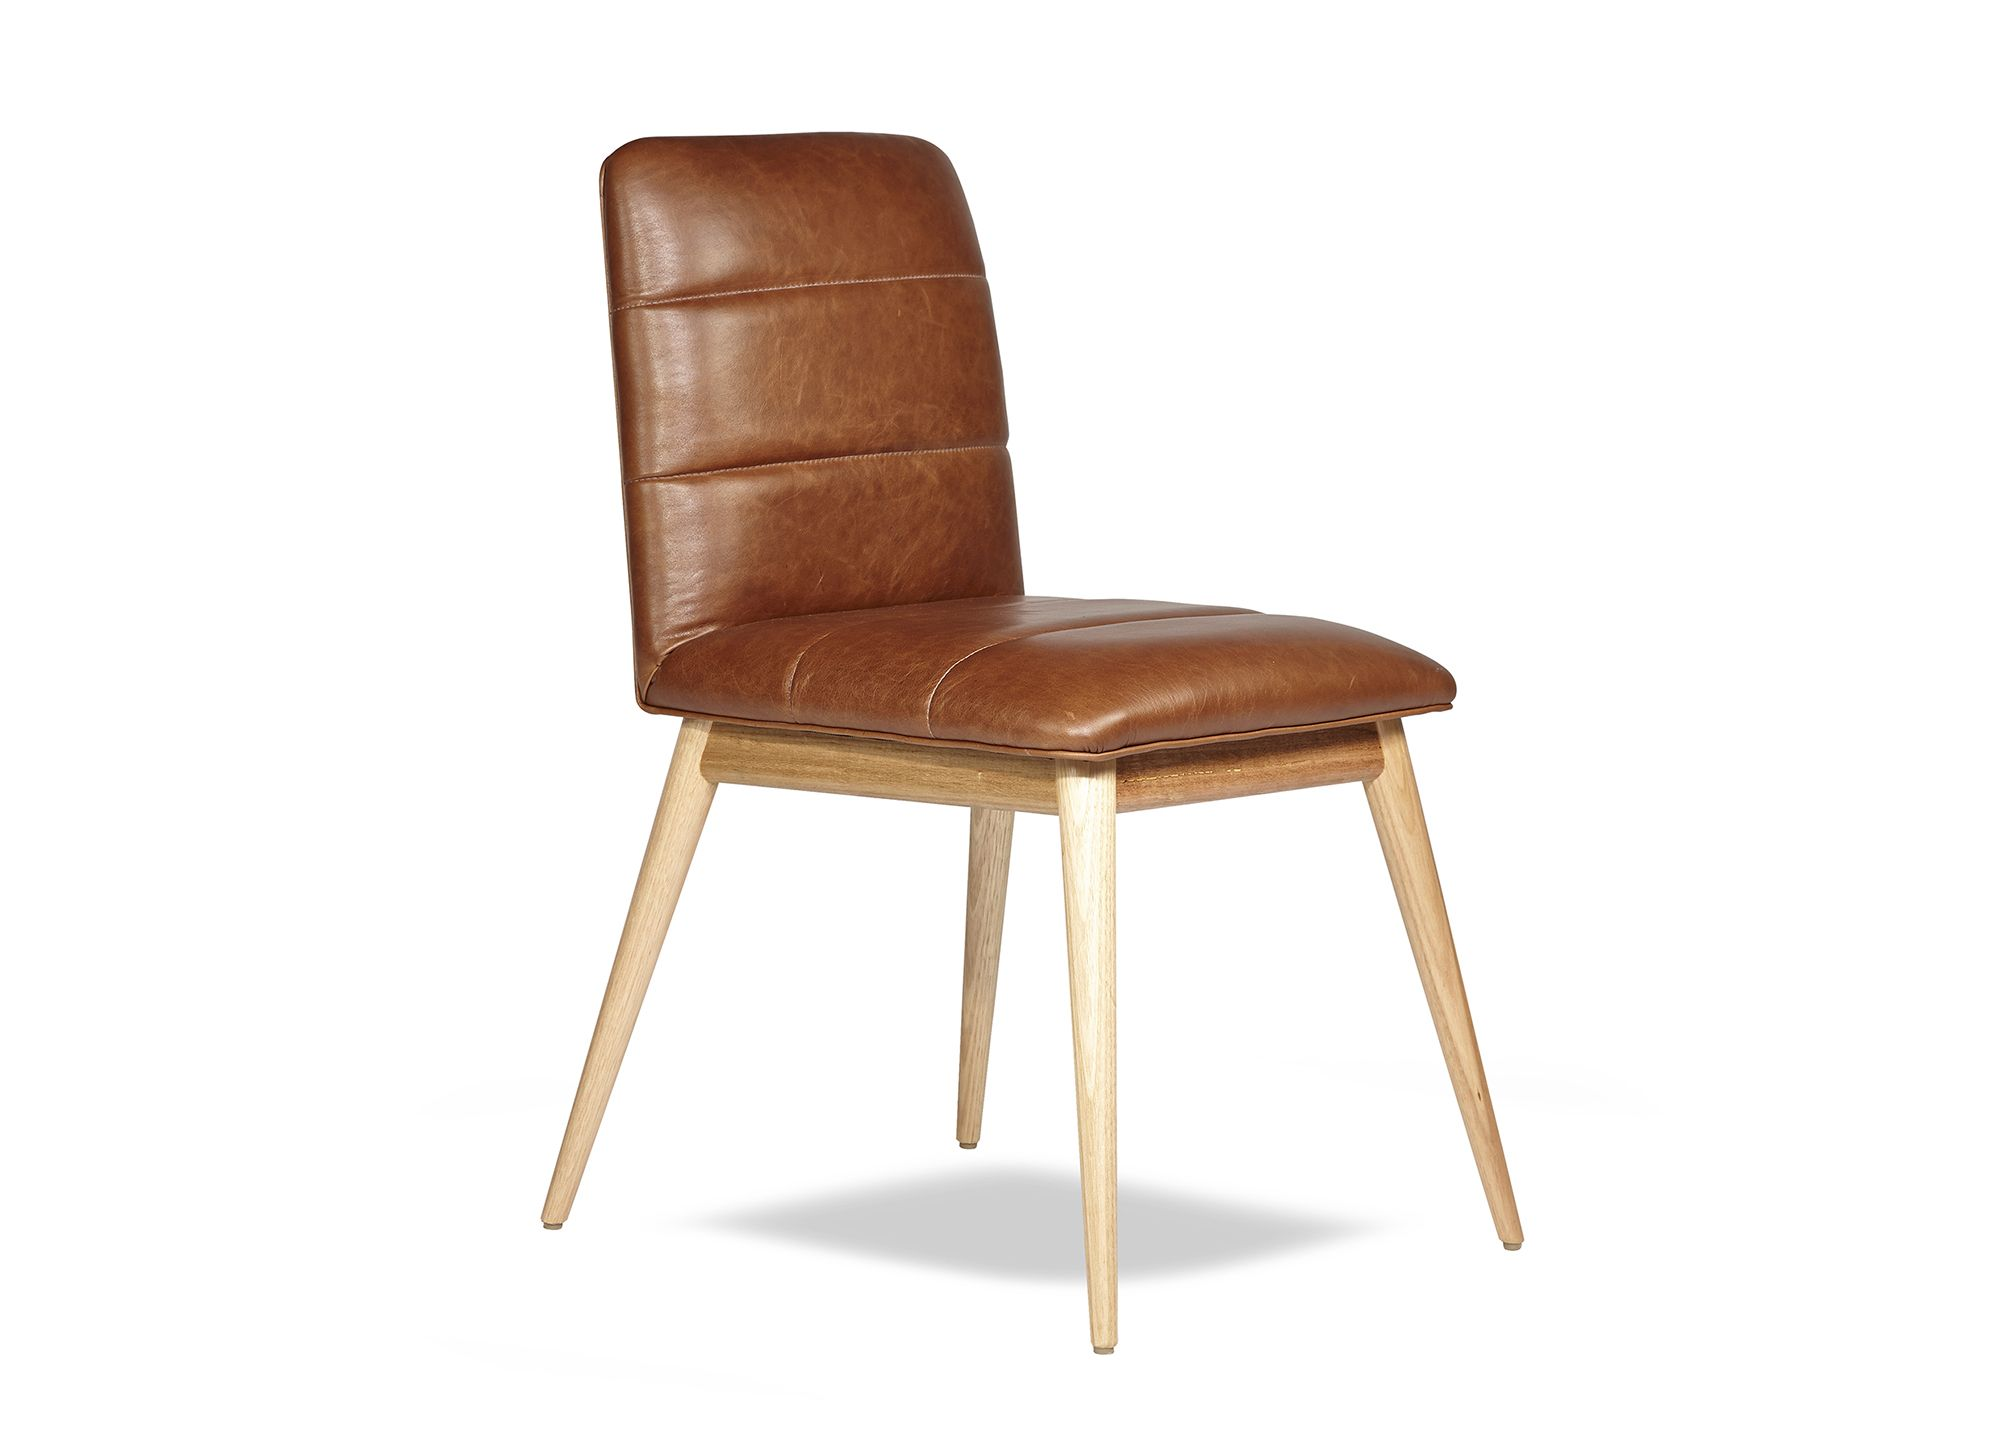 Modern Leather Dining Chairs Australia Amazon Uk Christmas Chair Covers Pin By Arthur G On Contemporary Australian